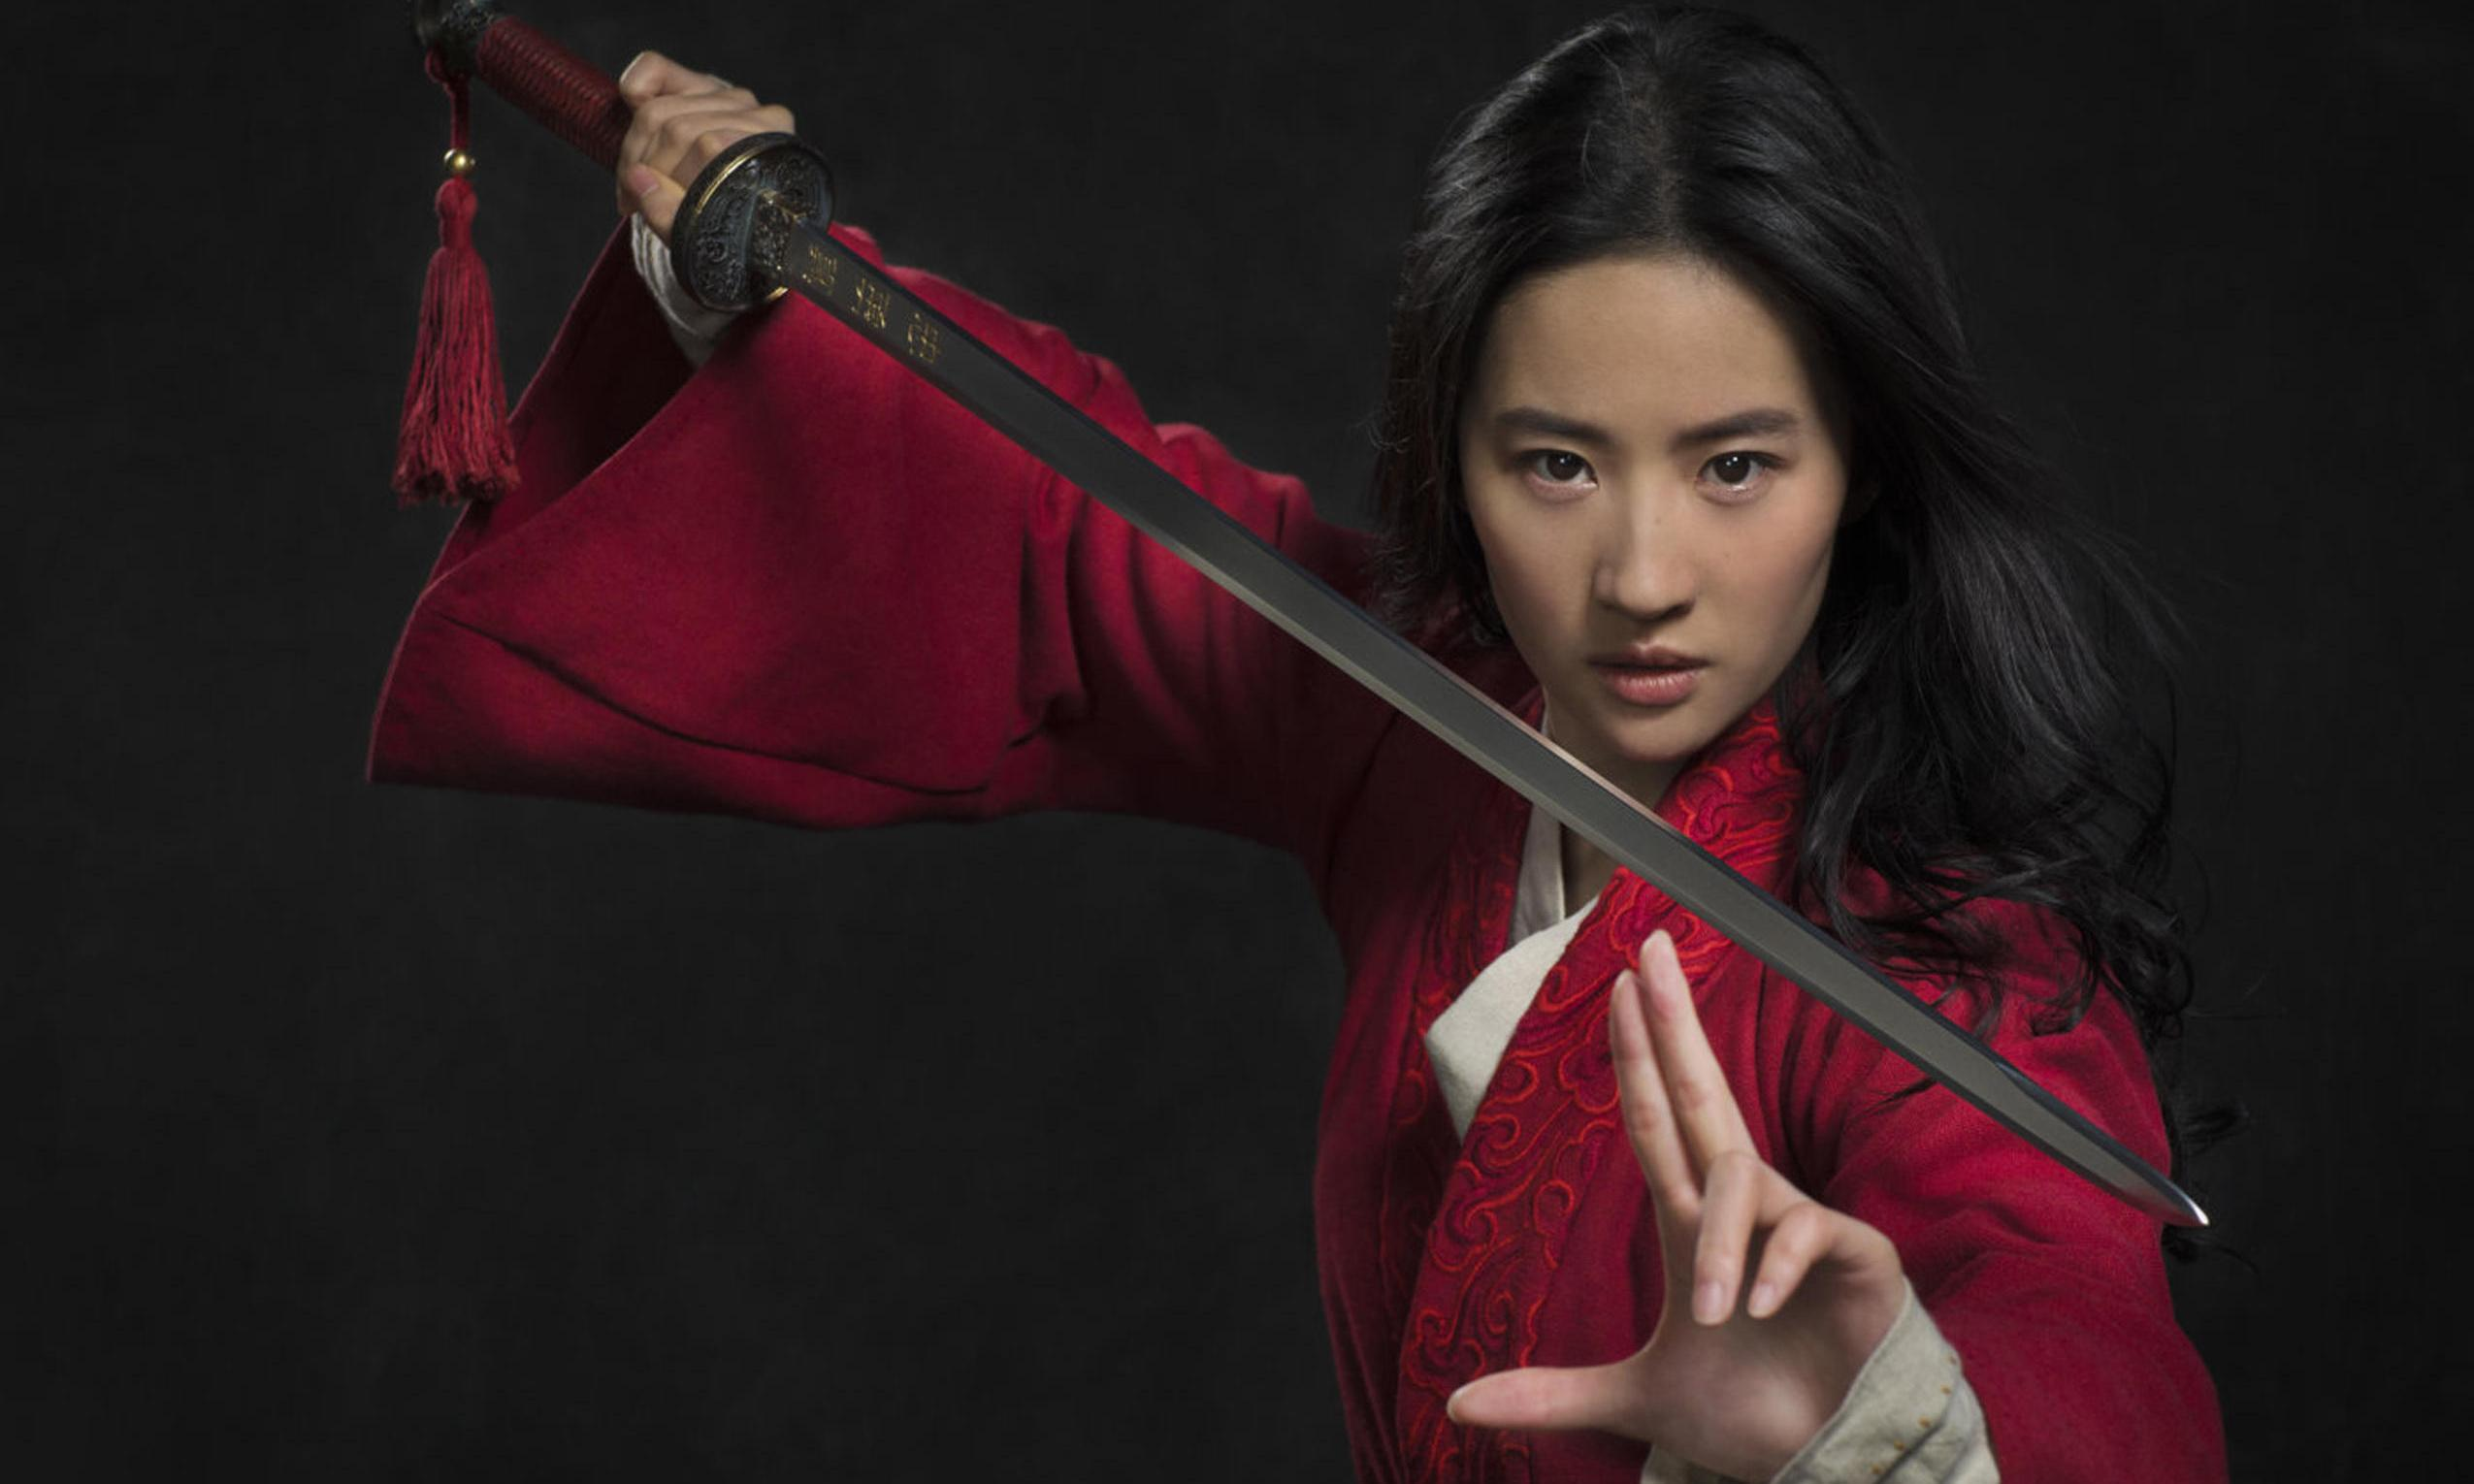 Disney's Mulan star sparks call for boycott with Hong Kong stance